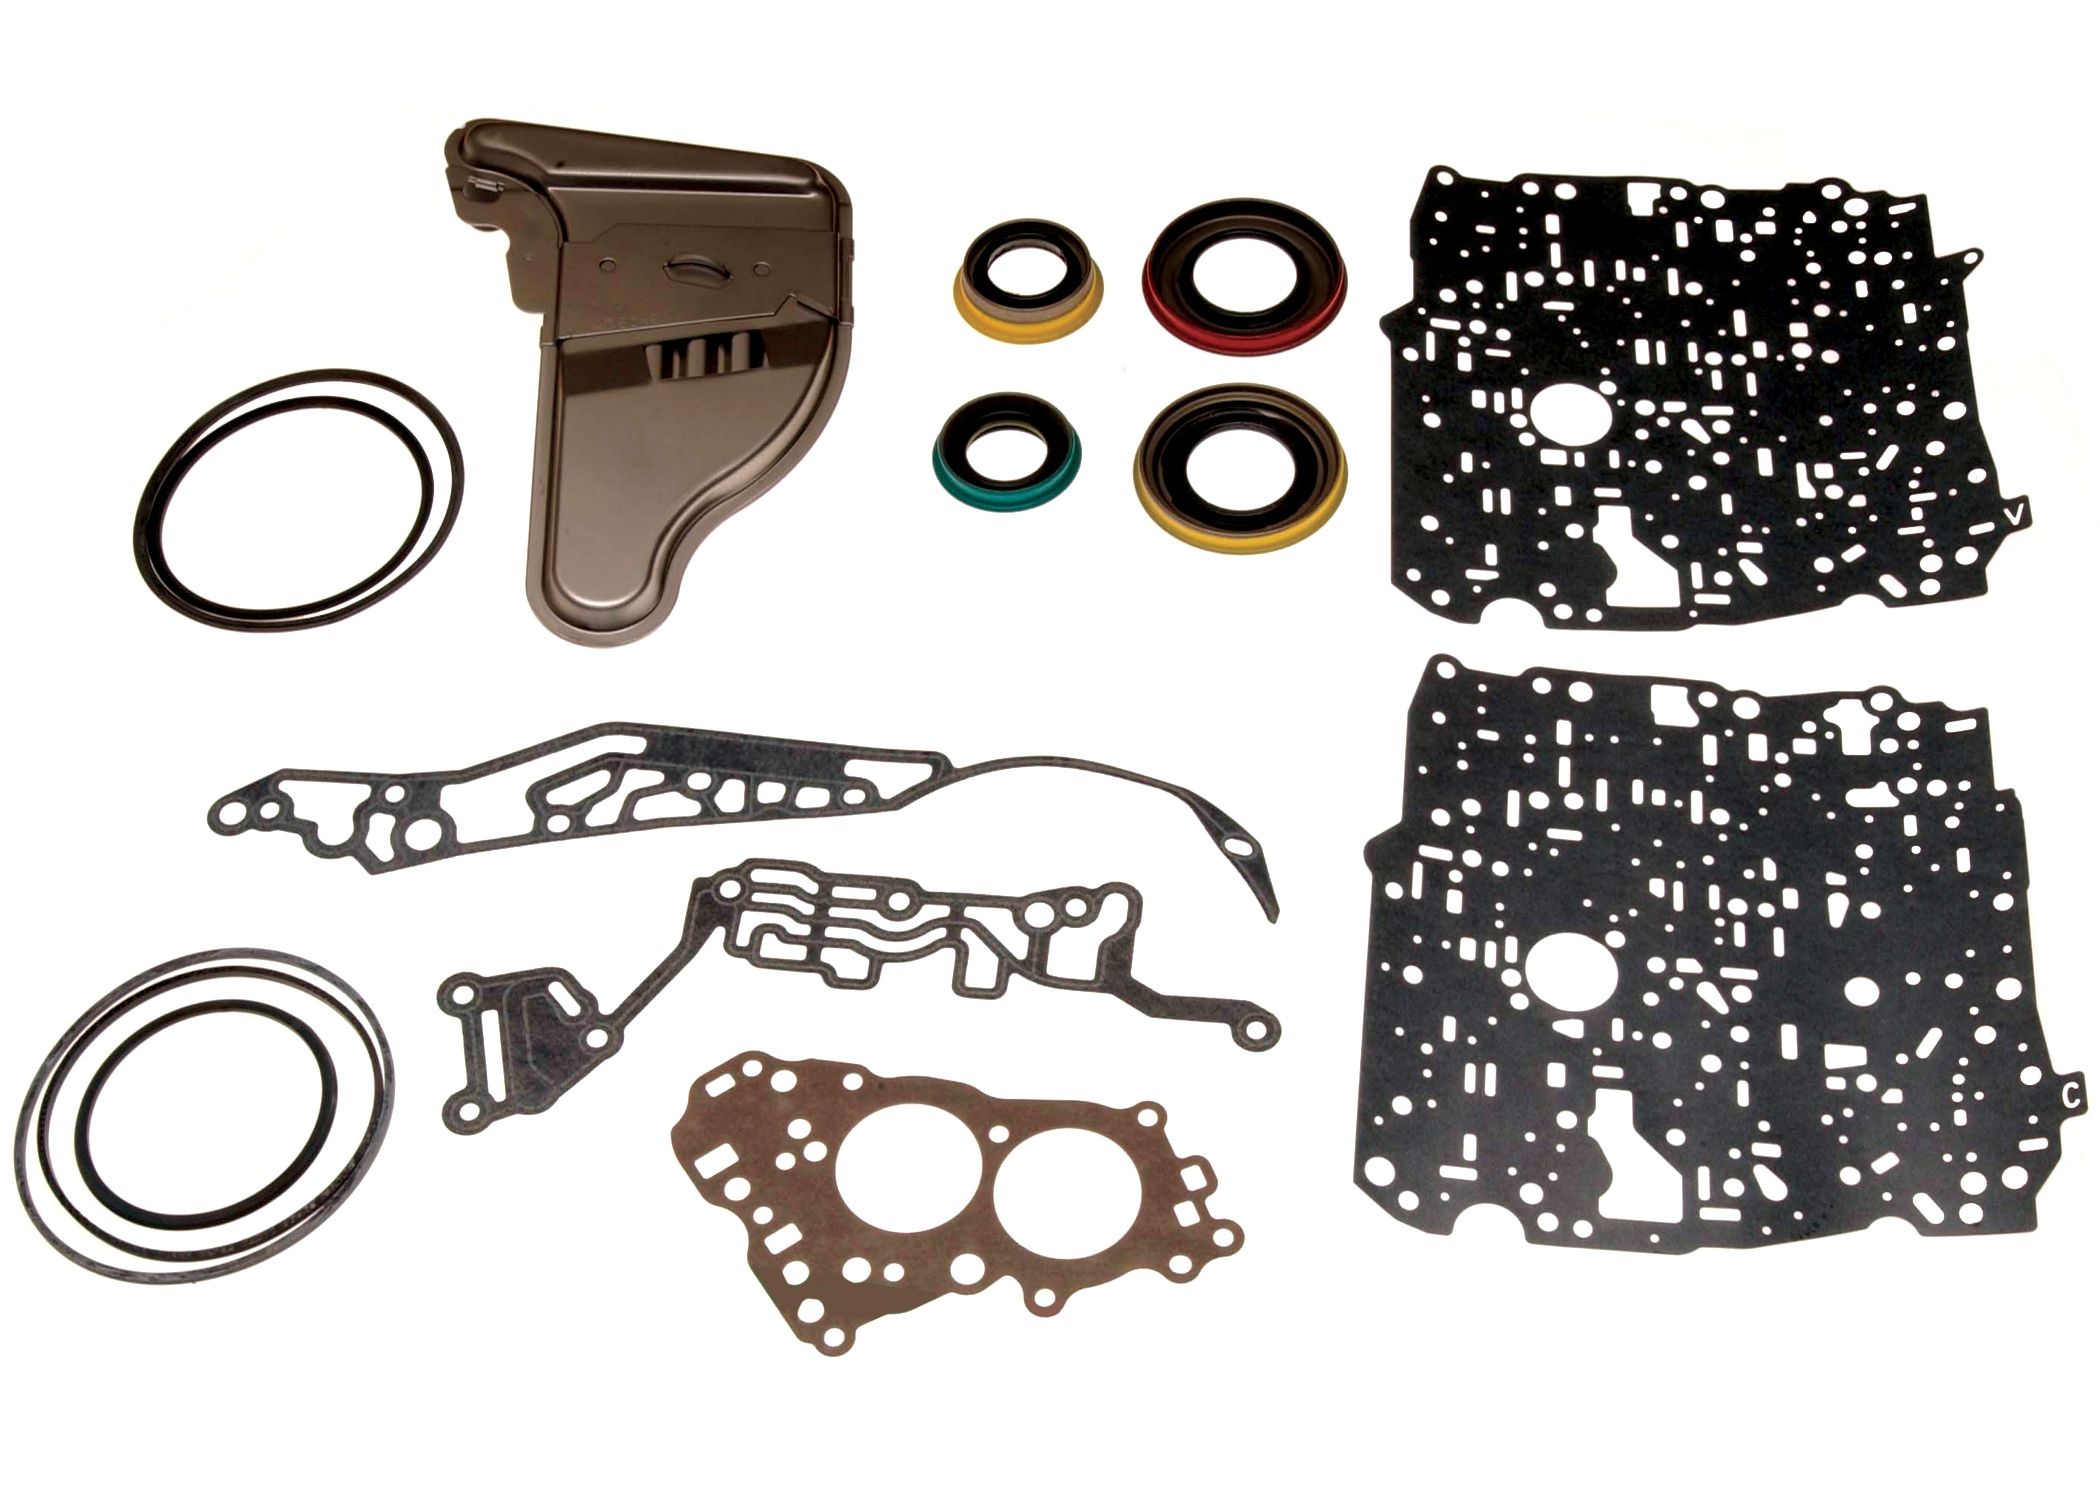 ACDELCO OE SERVICE - Auto Transmission Kit (Service Overhaul w/Plate, Gasket, Seal) - DCB 24211686